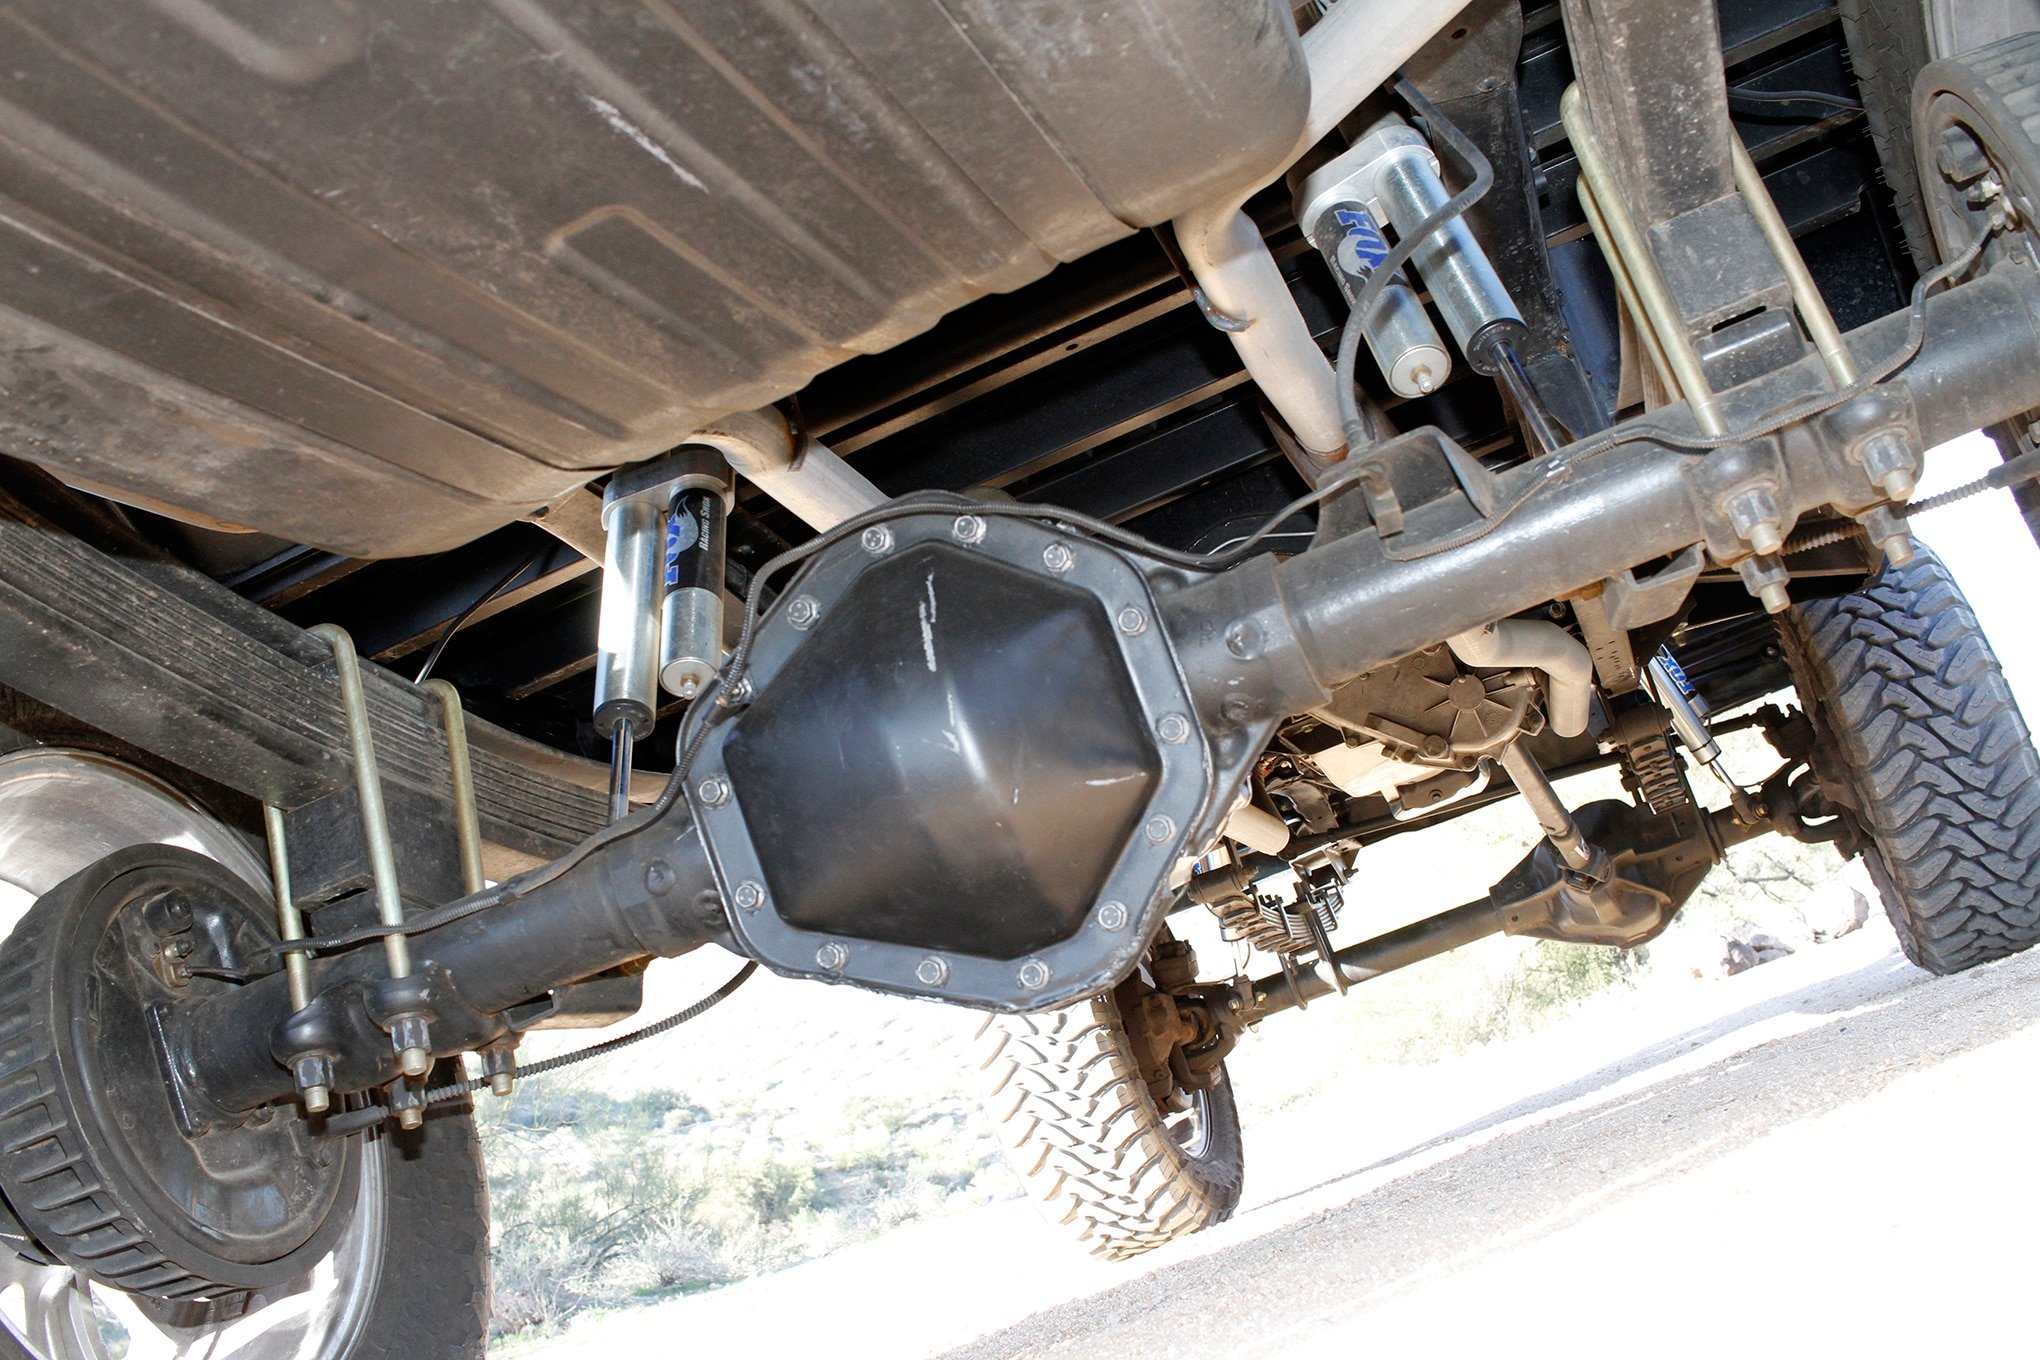 004 1967 chevyc20 4x4 conversion clean and black 14 bolt rear axle